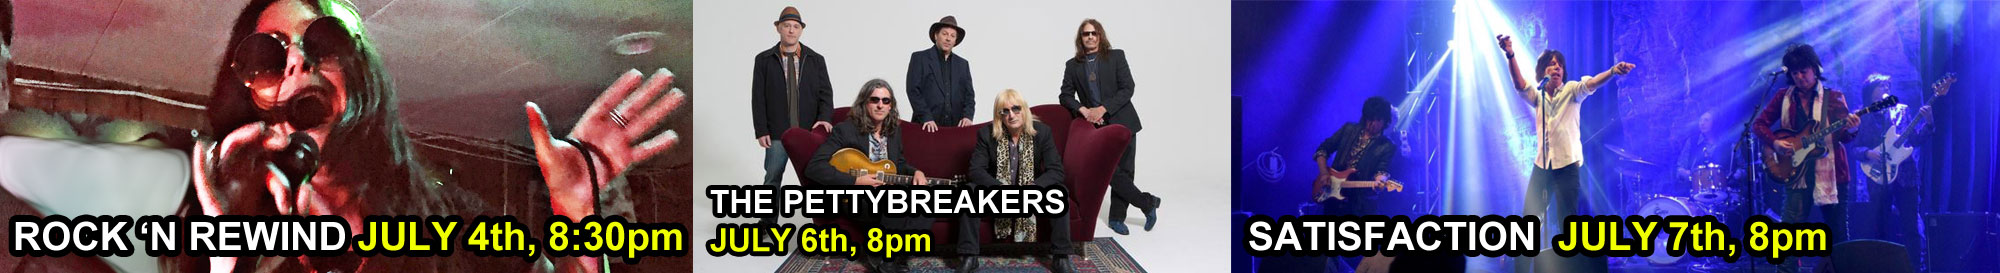 Rock N Rewind July 4th 8:30pm The Pettybreakers July 6th 8pm Satisfaction July 7th 8pm